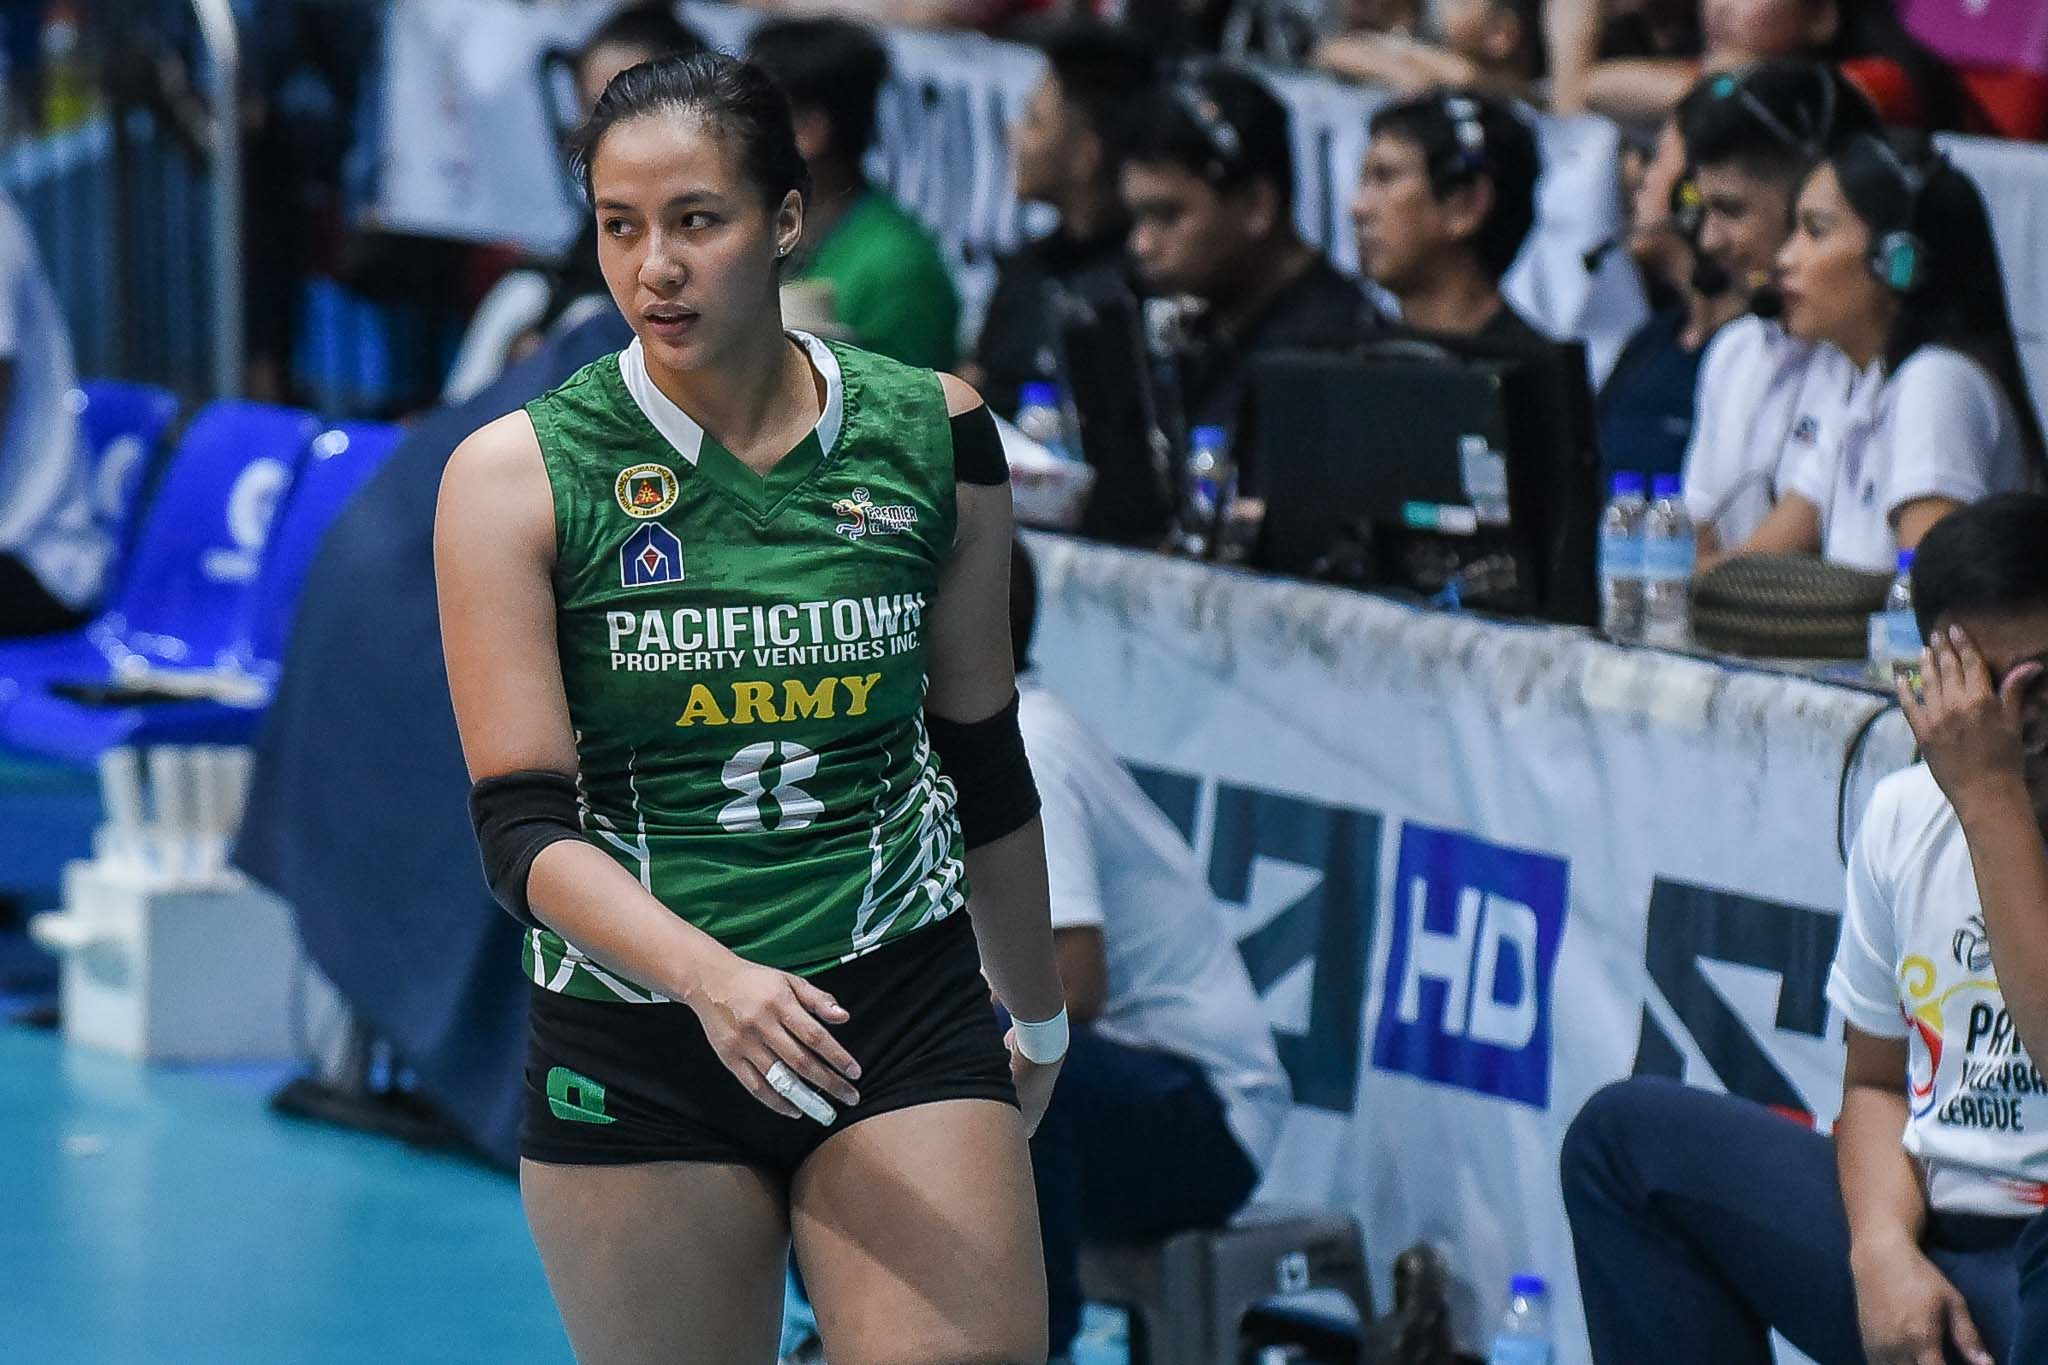 Tiebreaker Times Playing in back-to-back five setters all 'worth it' for Jovelyn Gonzaga News PSL PVL Volleyball  Pacific Town-Army Lady Troopers Jovelyn Gonzaga Cignal HD Spikers 2019 PVL Season 2019 PVL Open Conference 2019 PSL Season 2019 PSL All Filipino Conference